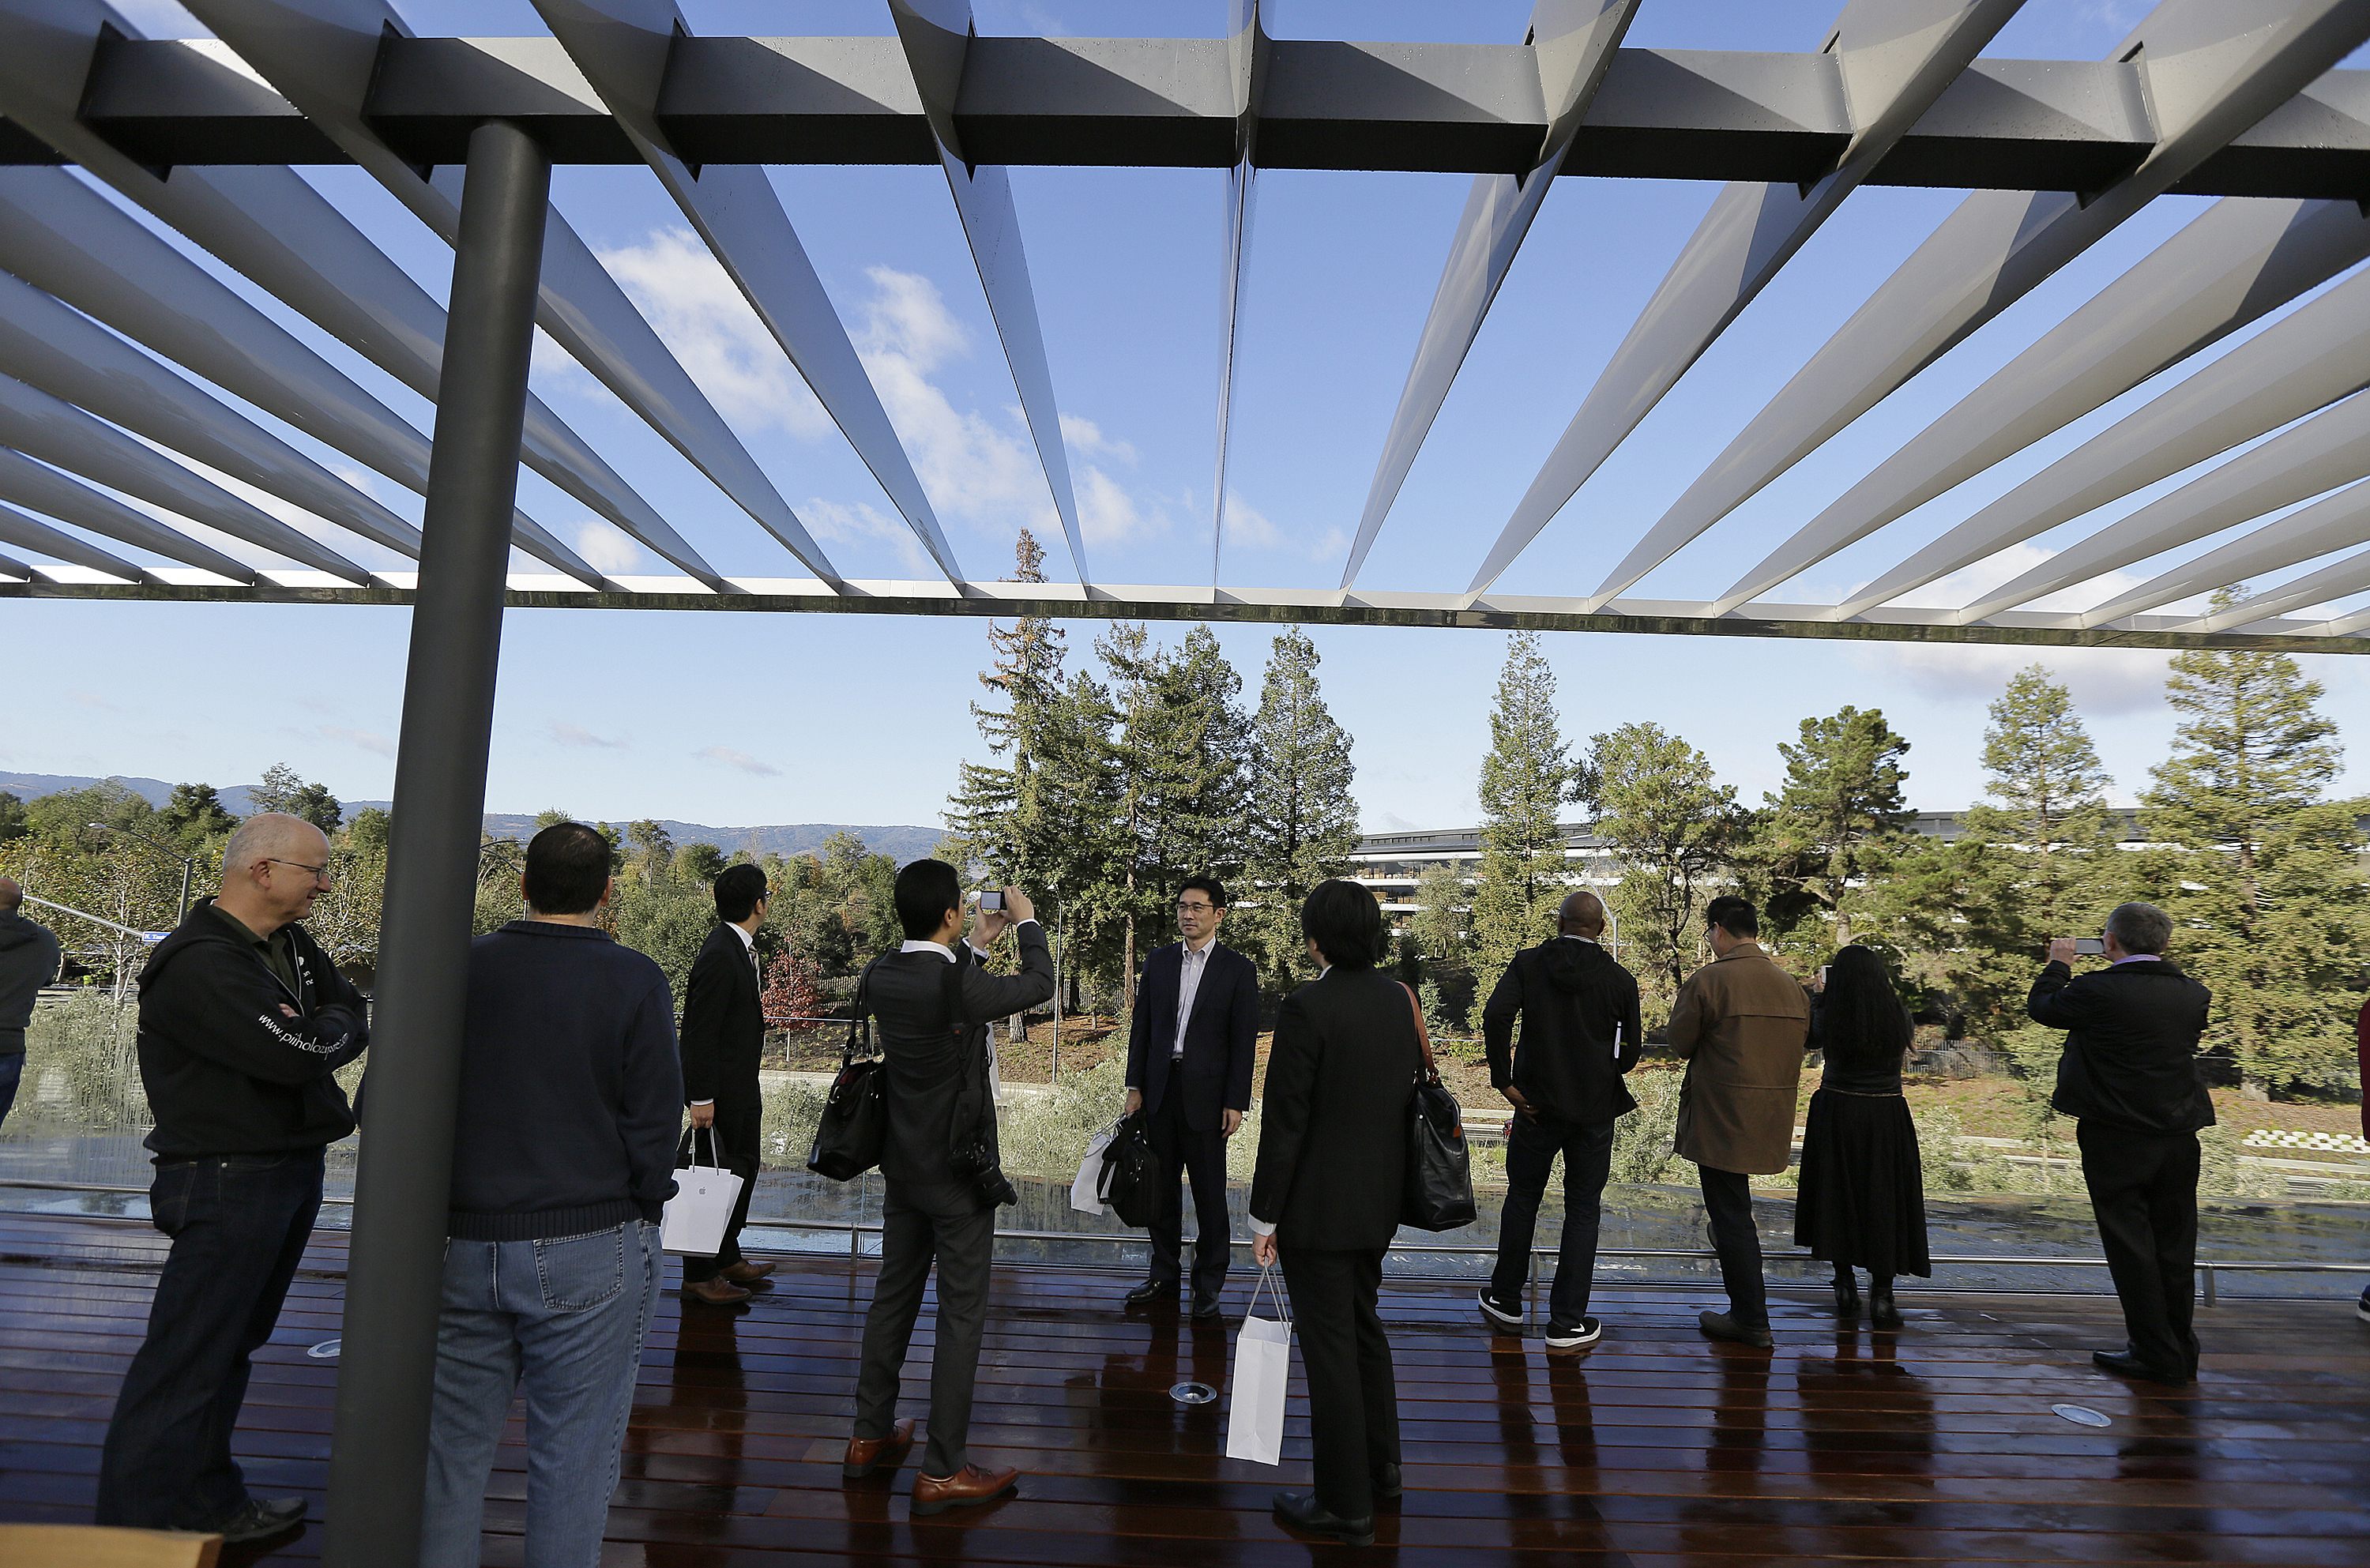 <div class='meta'><div class='origin-logo' data-origin='none'></div><span class='caption-text' data-credit='AP'>People stand on a rooftop terrace with the main building in the background during the grand opening of the Apple Park Visitor Center</span></div>